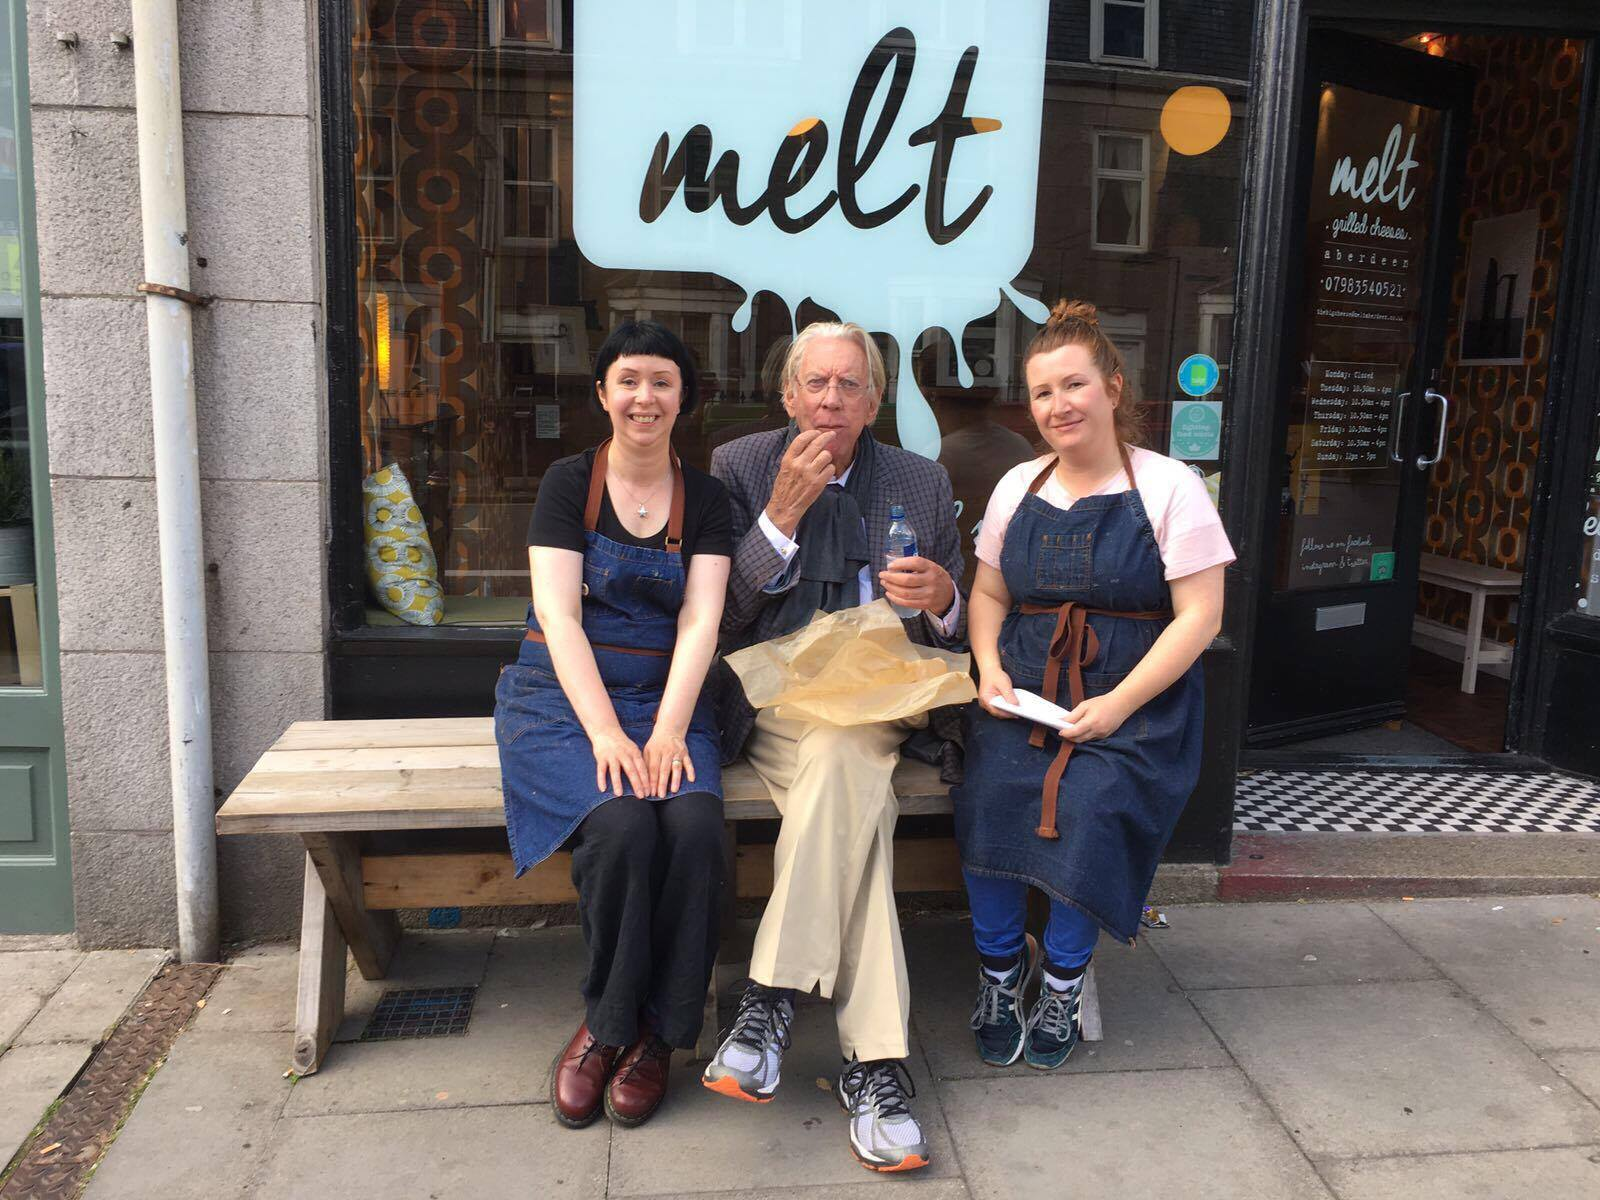 Donald Sutherland with Melt staff Catriona Platten, left and Melanie Mckay, right